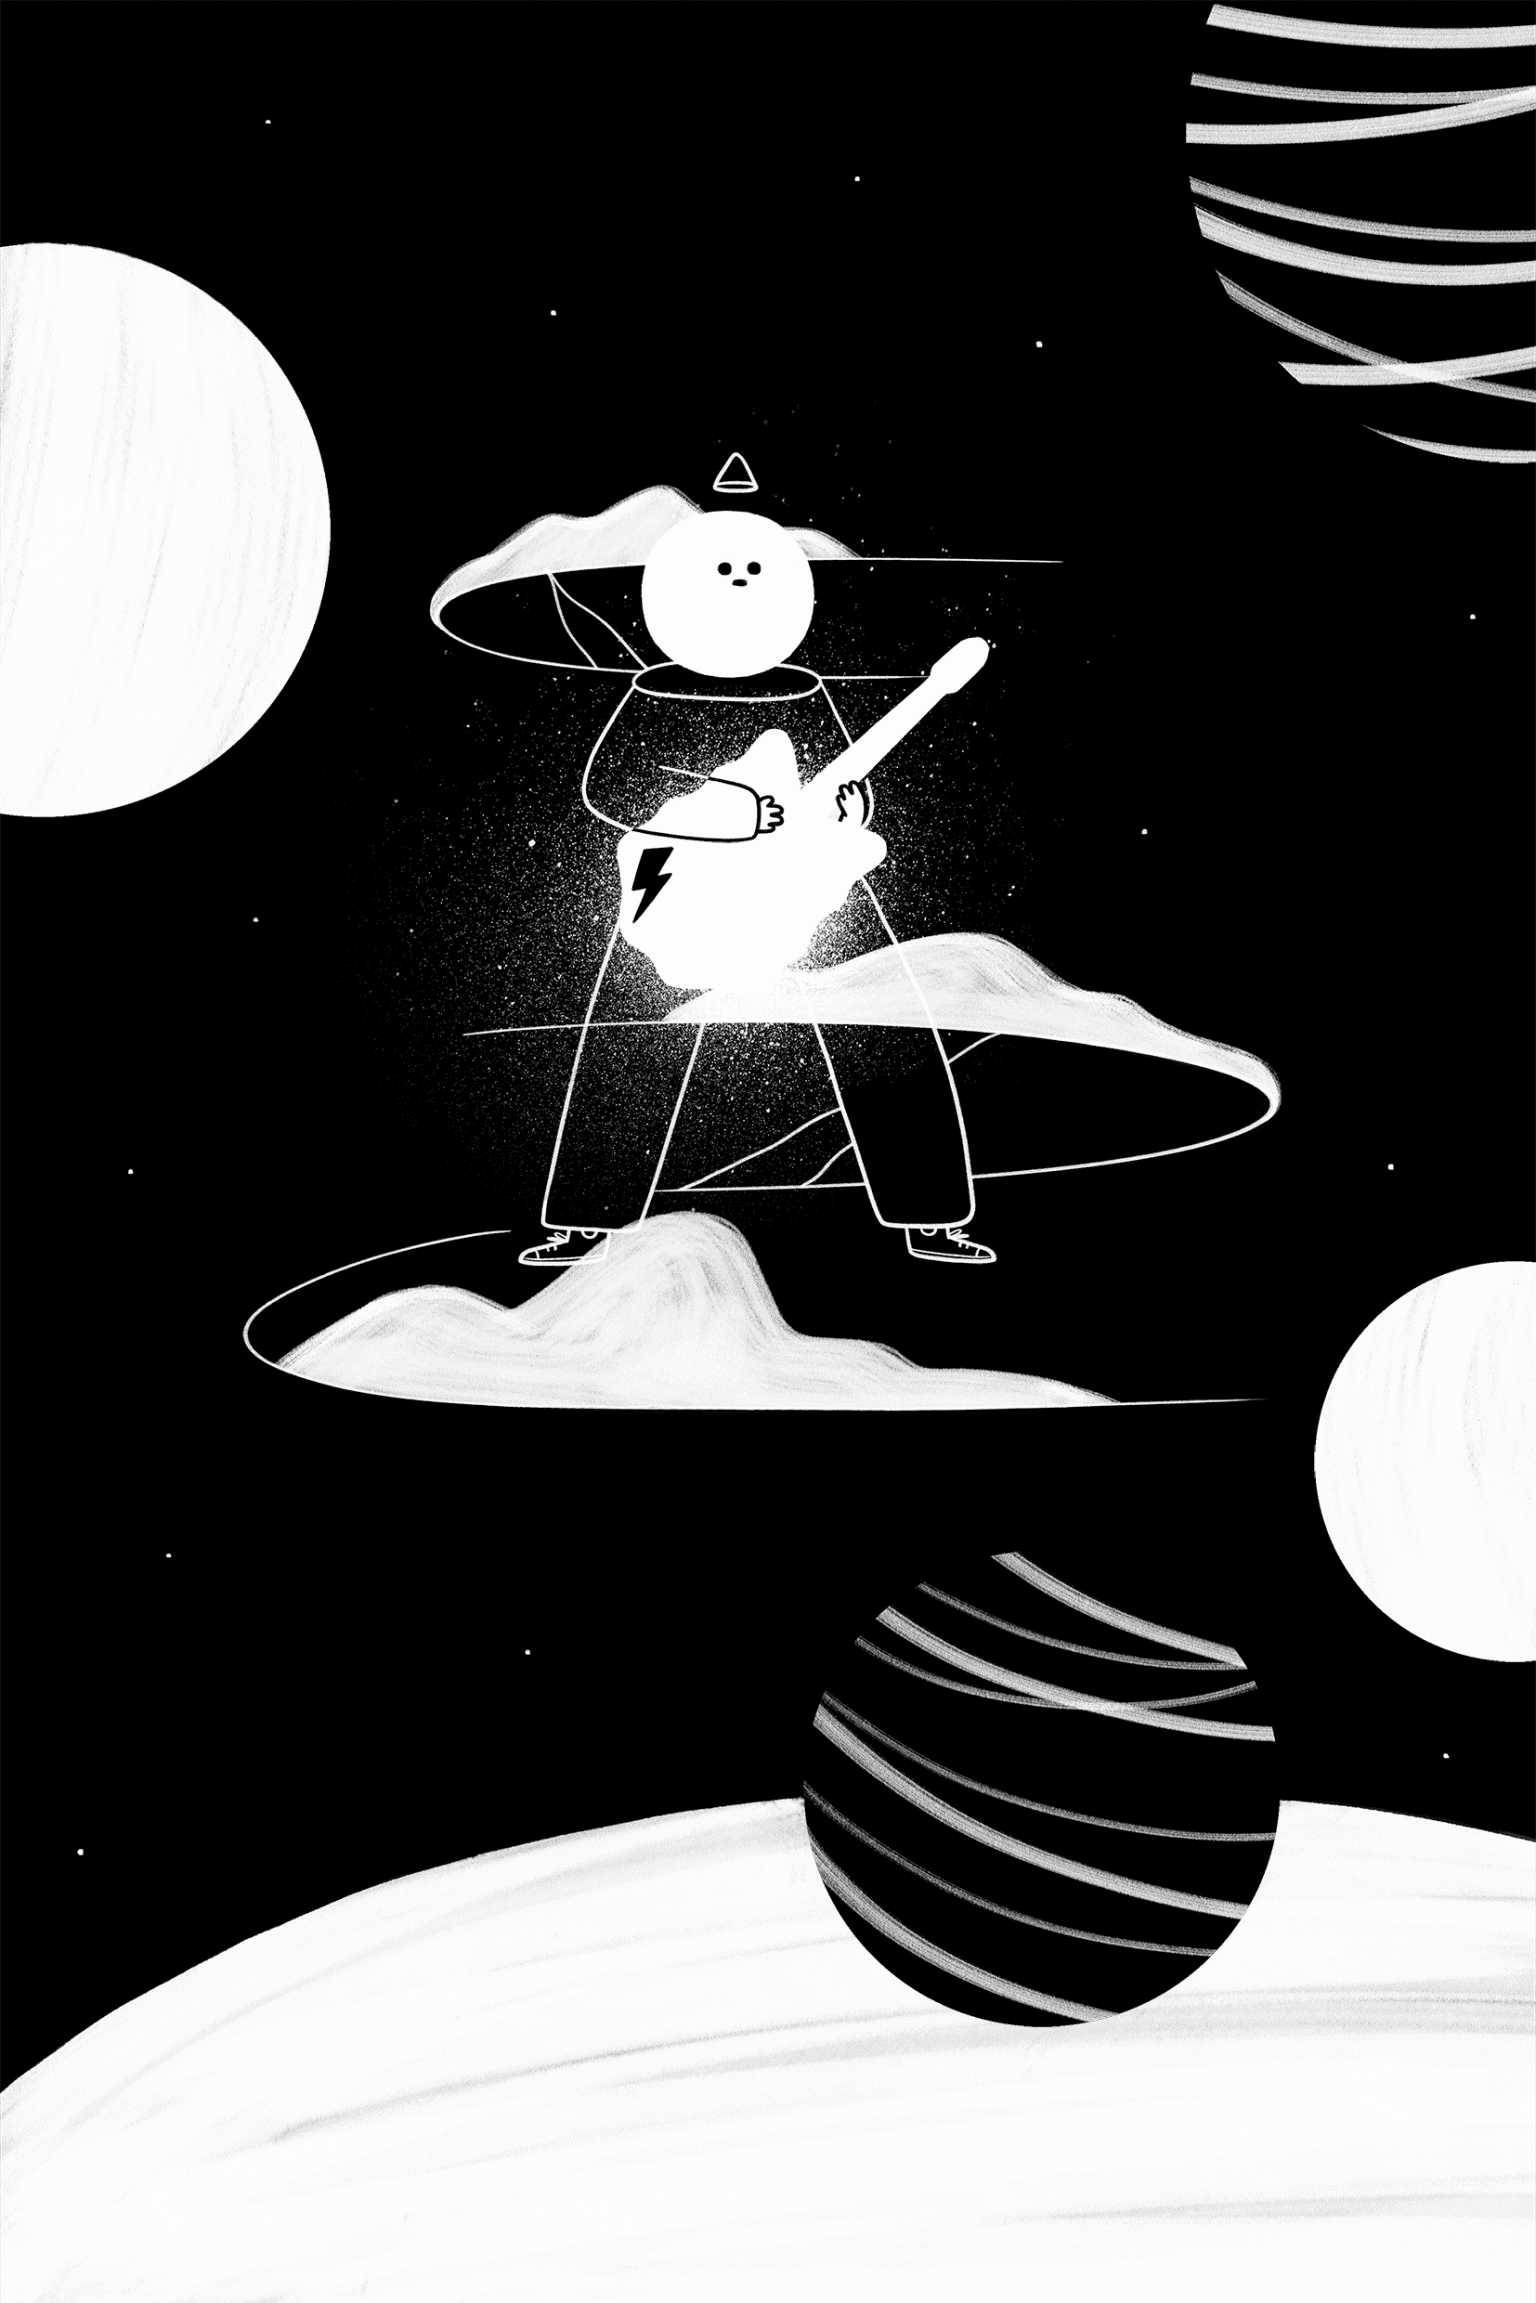 Illustration for a story based on David Bowie for Marvin magazine